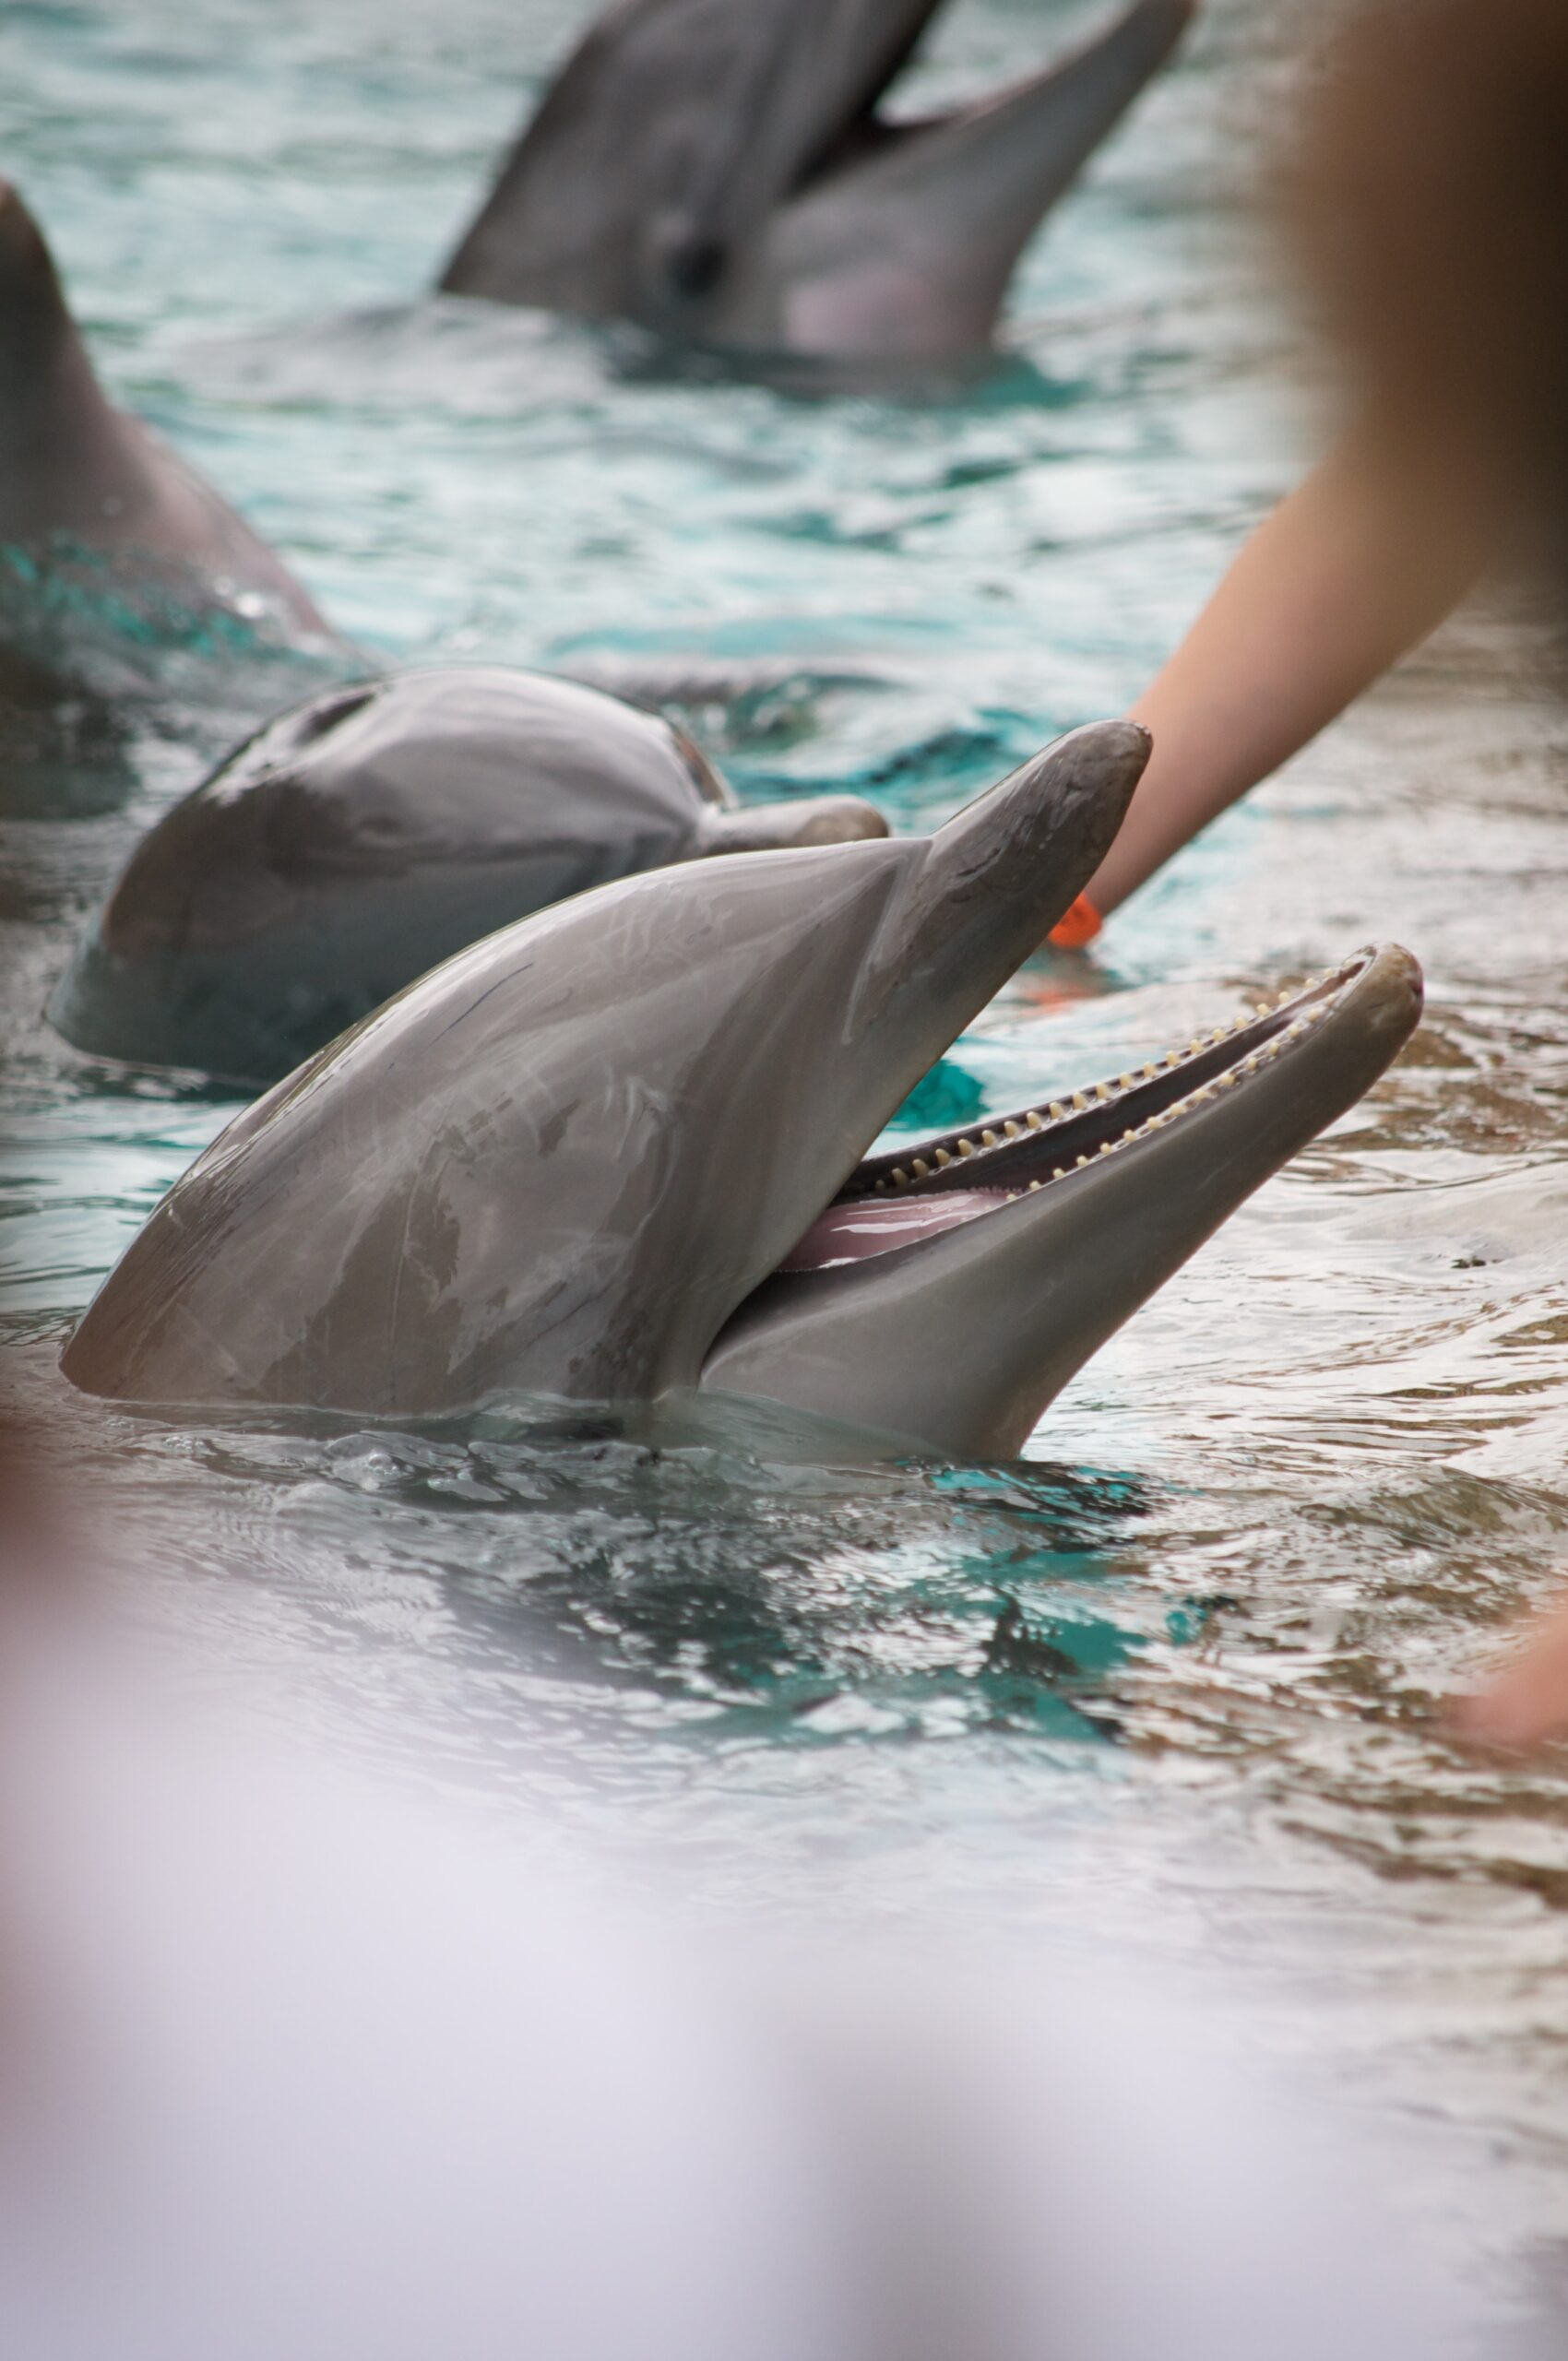 dan-dennis-Dolphins rising to surface for human touch-unsplash